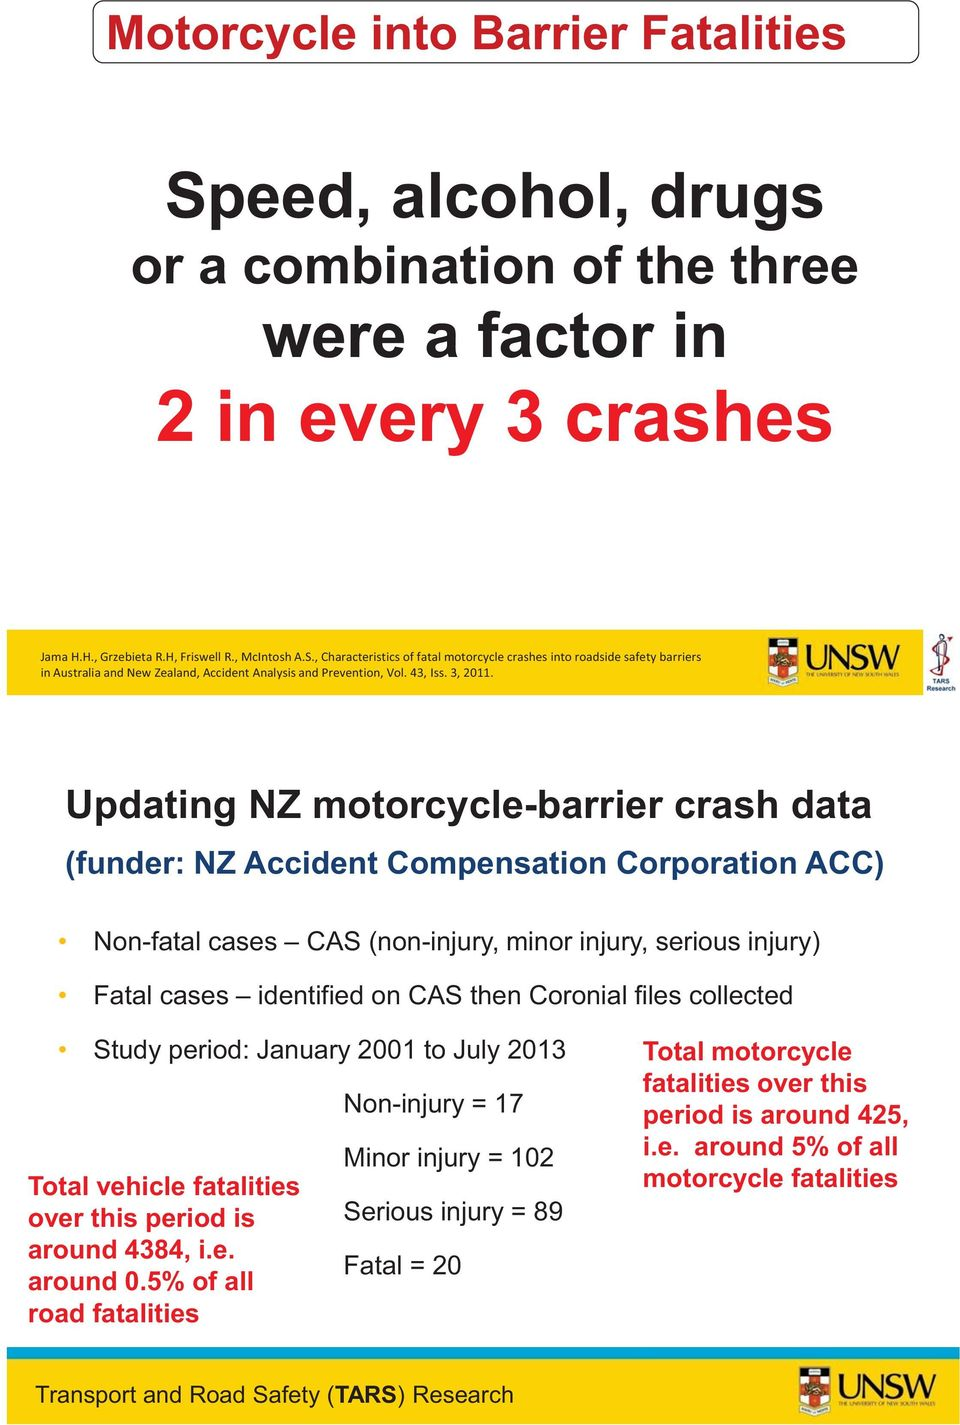 Updating NZ motorcycle-barrier crash data (funder: NZ Accident Compensation Corporation ACC) Non-fatal cases CAS (non-injury, minor injury, serious injury) Fatal cases identified on CAS then Coronial